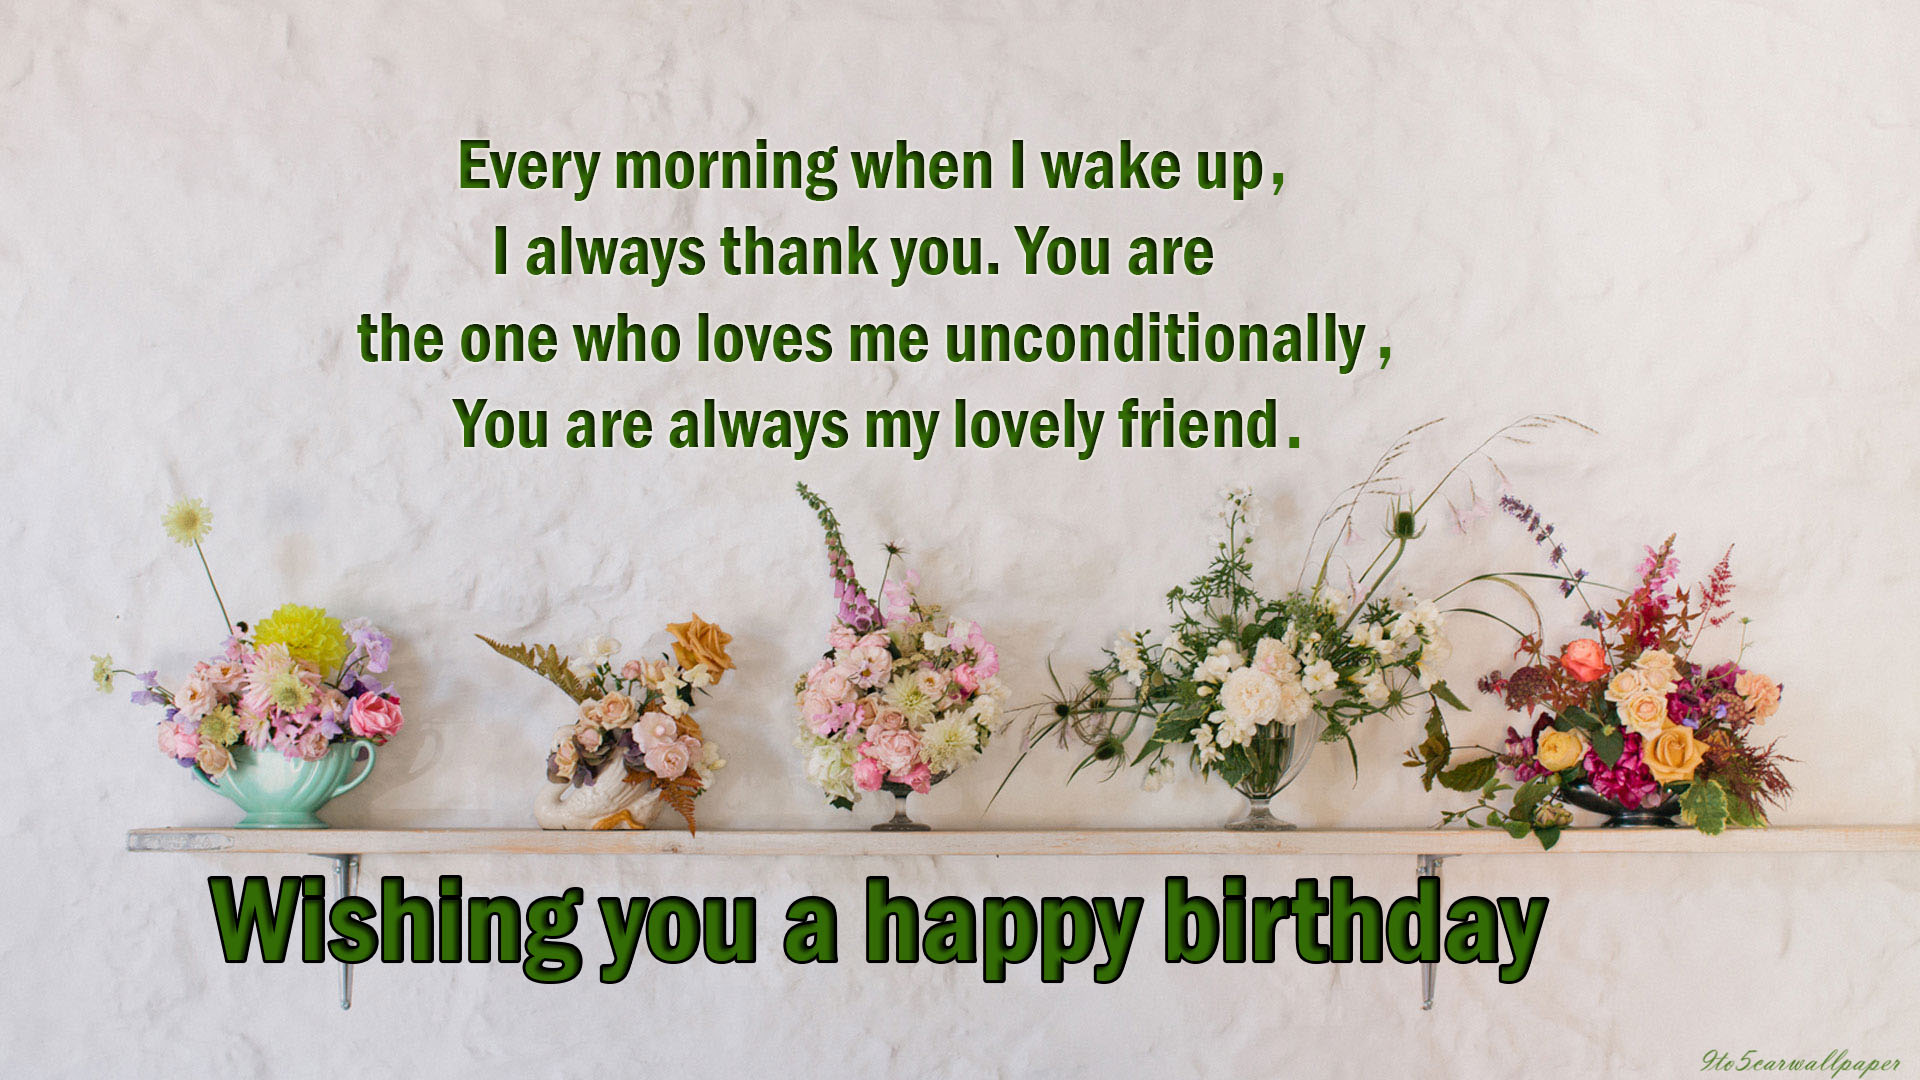 Happy birthday latest wallpapers and images happy birthday wishes cards quotes wallpapers 2018 m4hsunfo